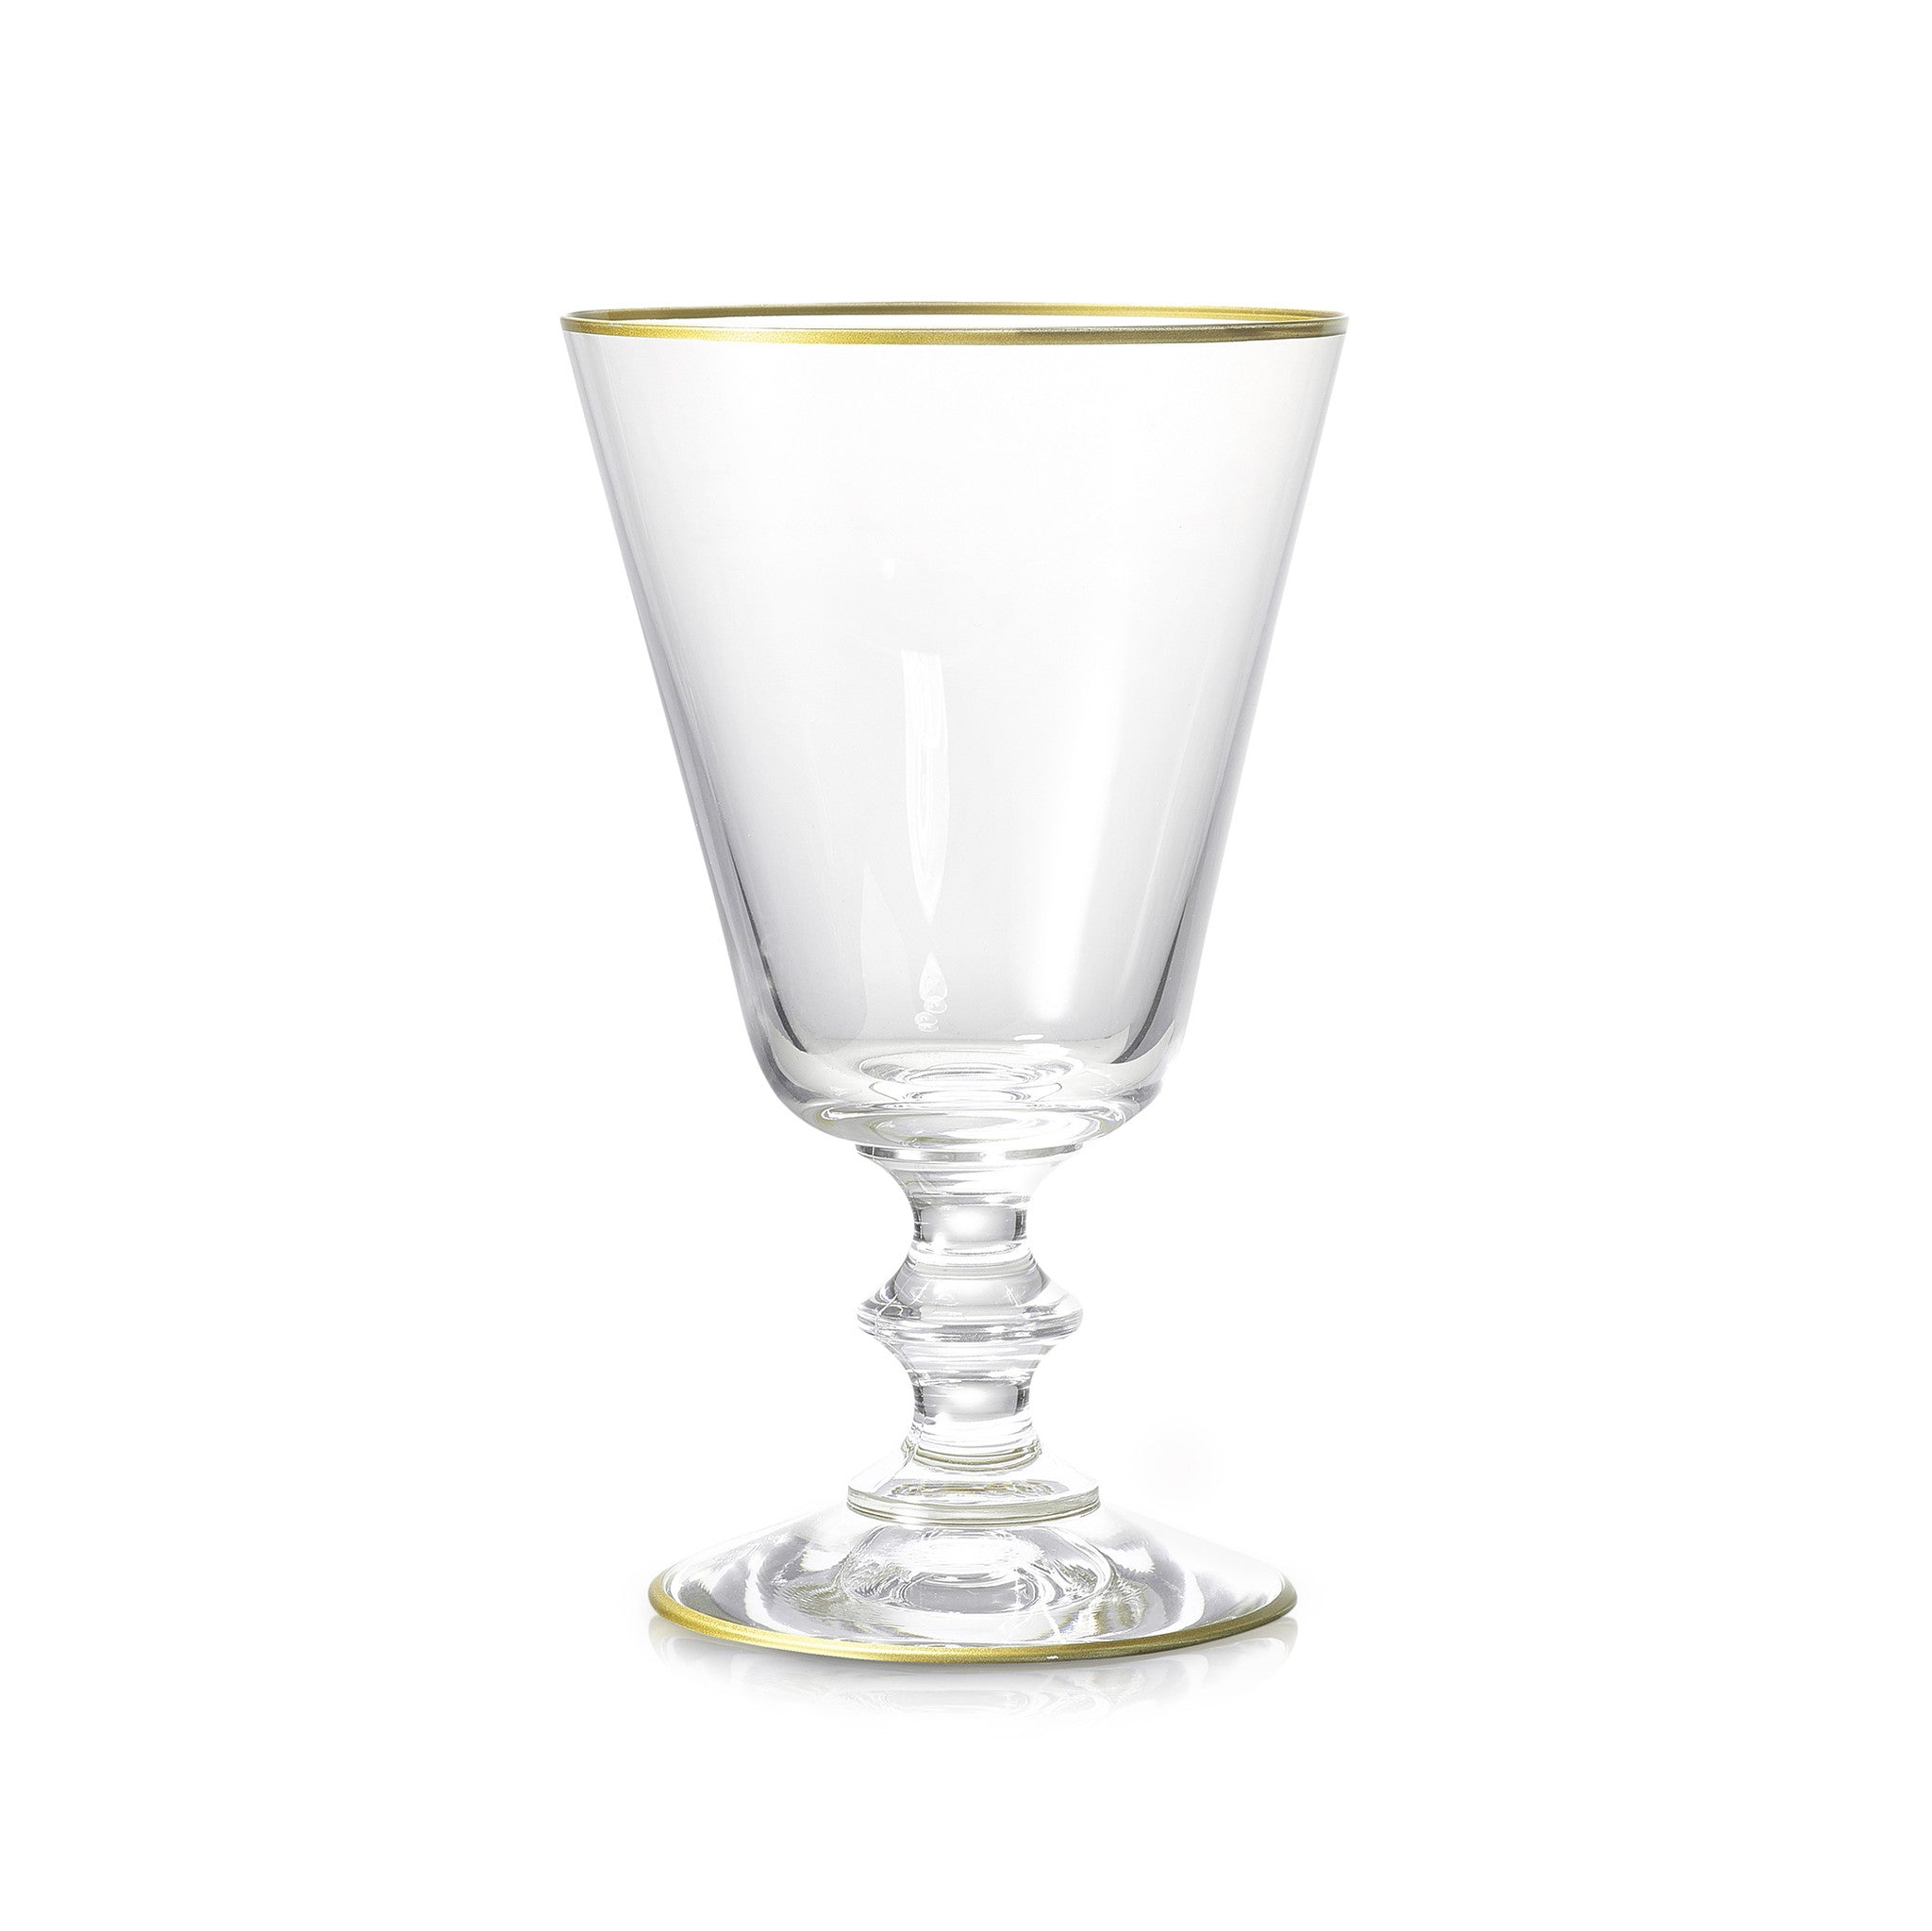 S&B Classic Red Wine Glass With Gold Rim, 24cl